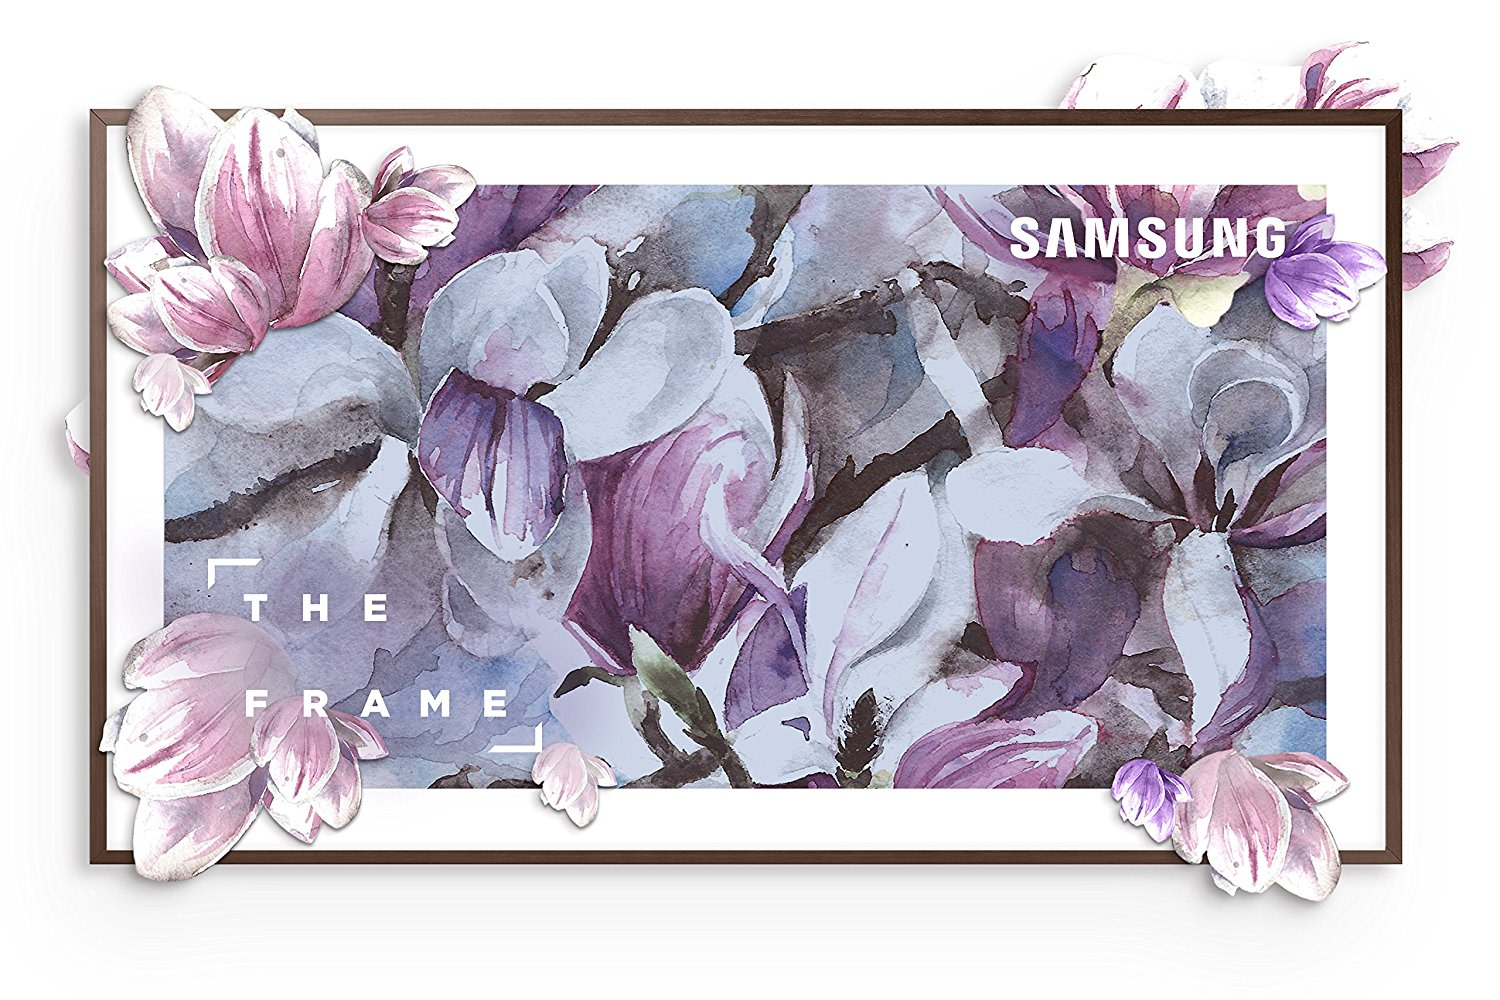 An image related to Samsung UN65LS003AFXZA 65-Inch HDR Flat Screen 4K LED 240Hz Smart TV with Samsung Motion Rate 240